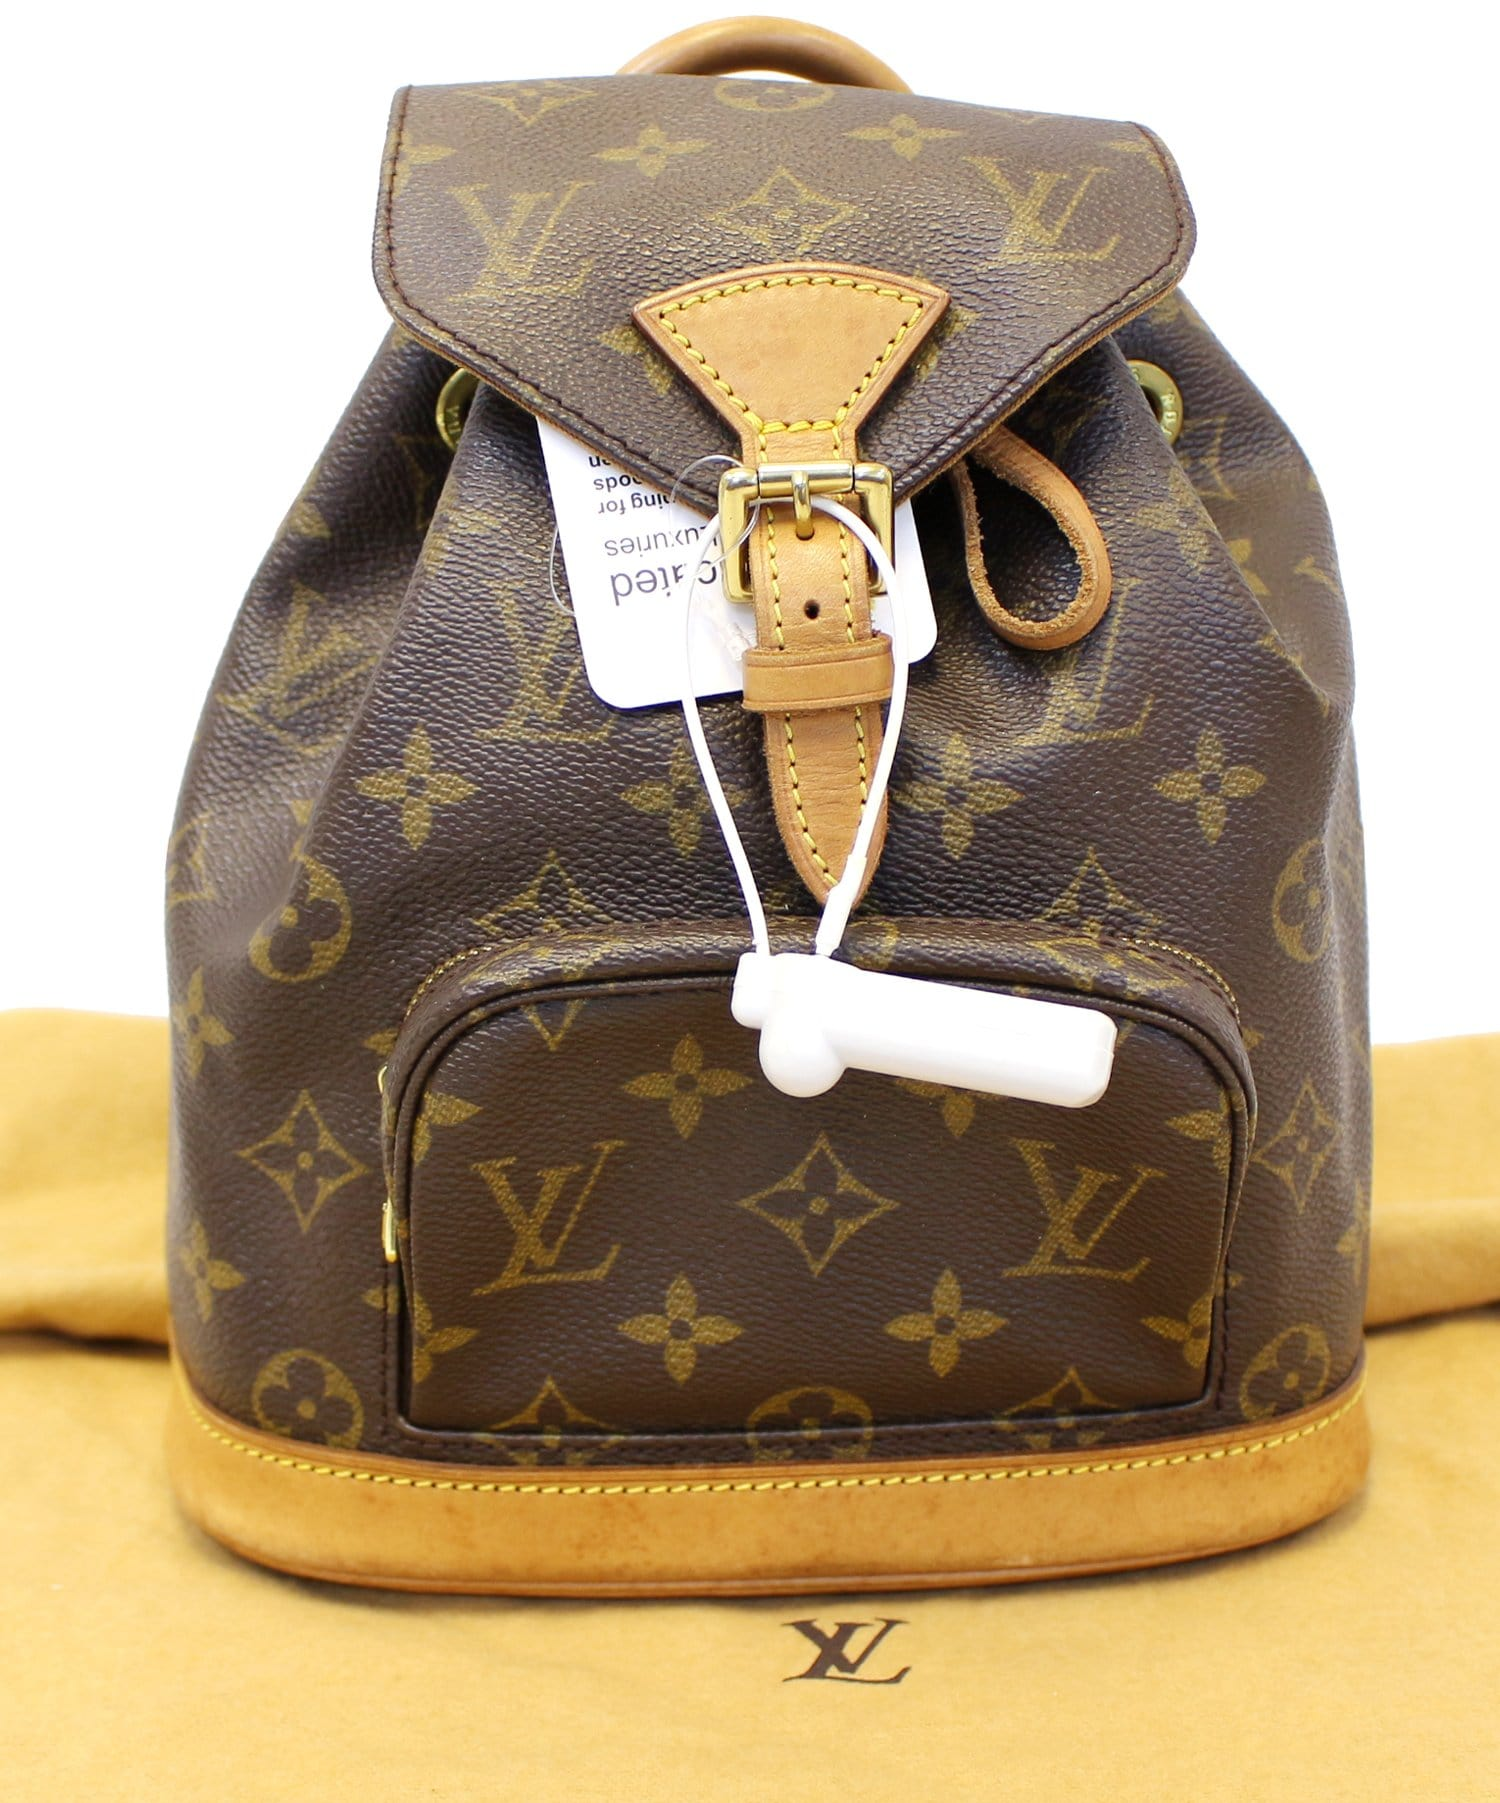 a2394ae571b5 LOUIS VUITTON Backpack Bag Monogram Montsouris PM autumn shoes 6fb9c 7f77b  ...